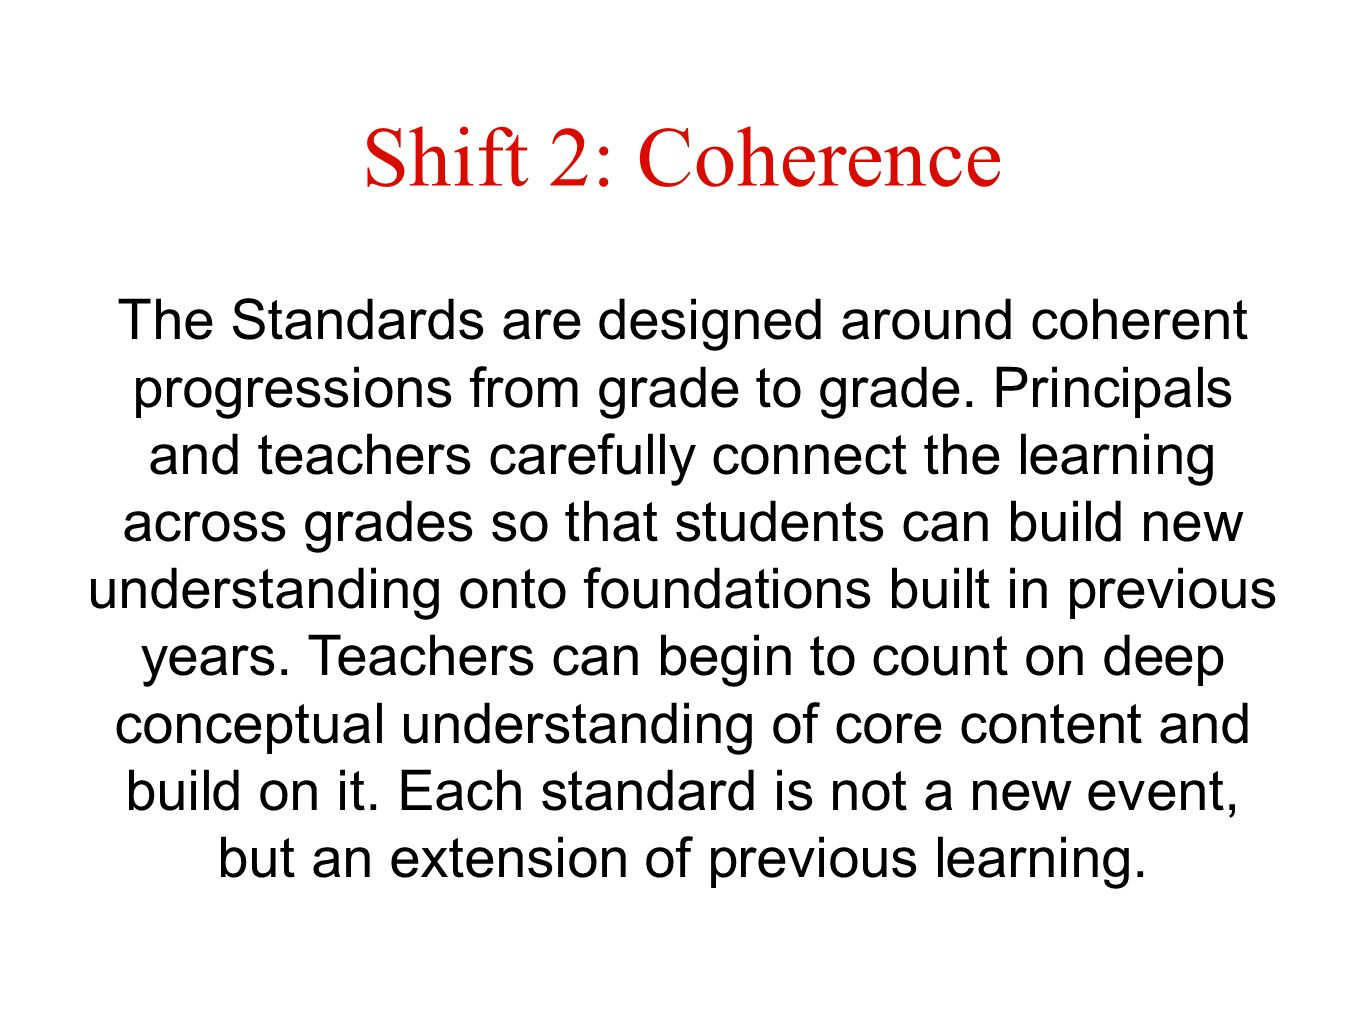 Shift 2: Coherence The Standards are designed around coherent progressions from grade to grade.